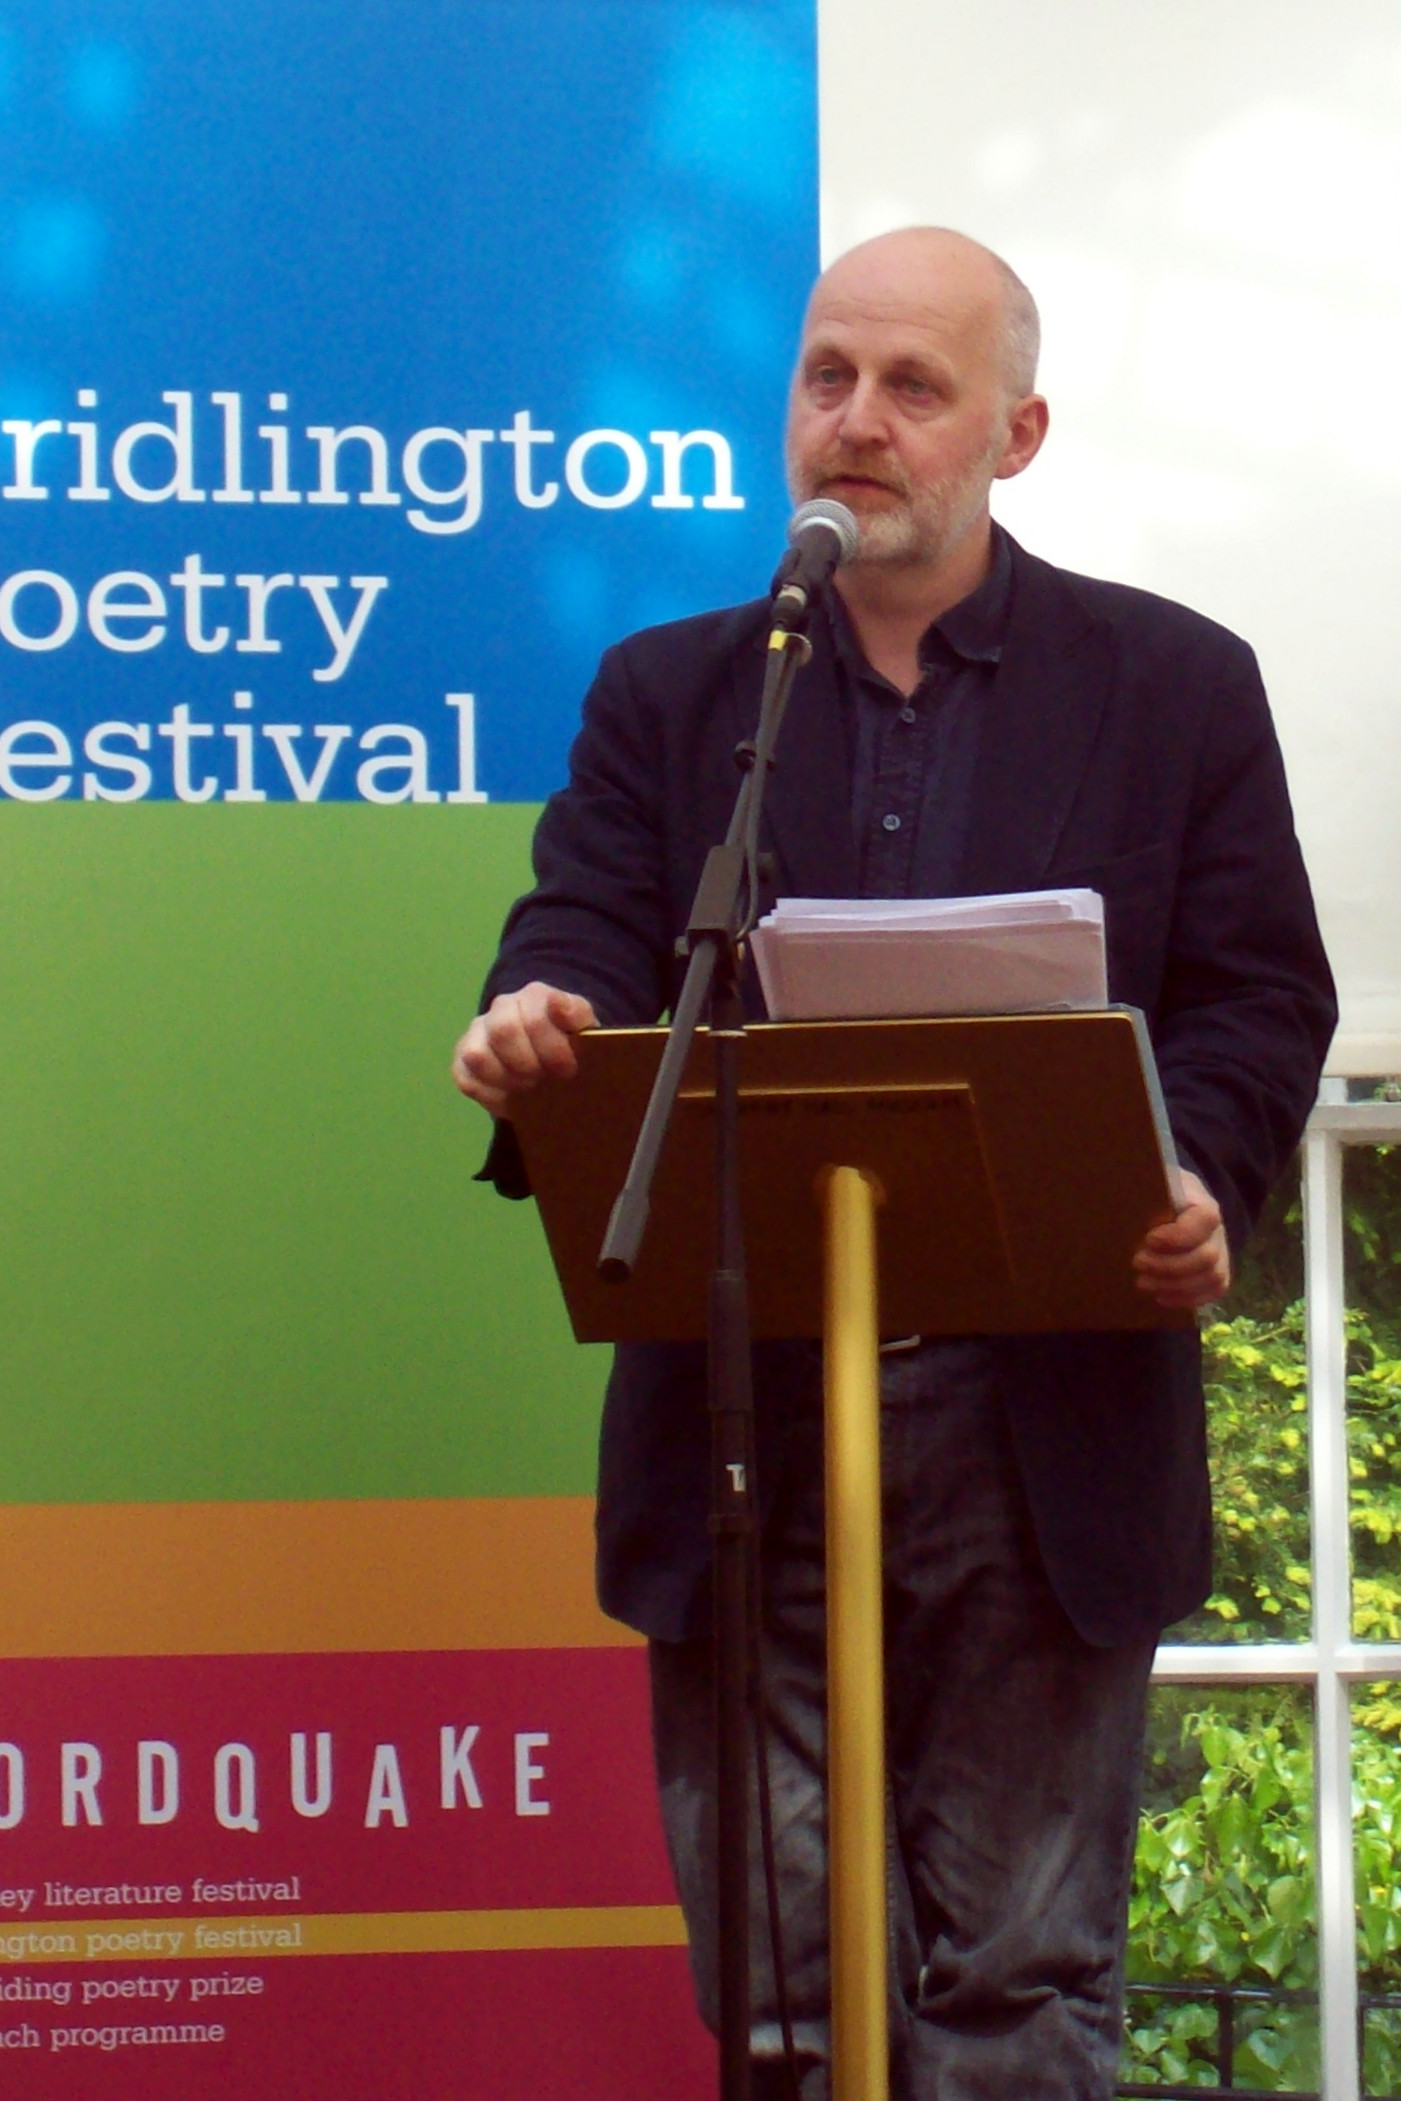 at 2013 Bridlington Poetry Festival